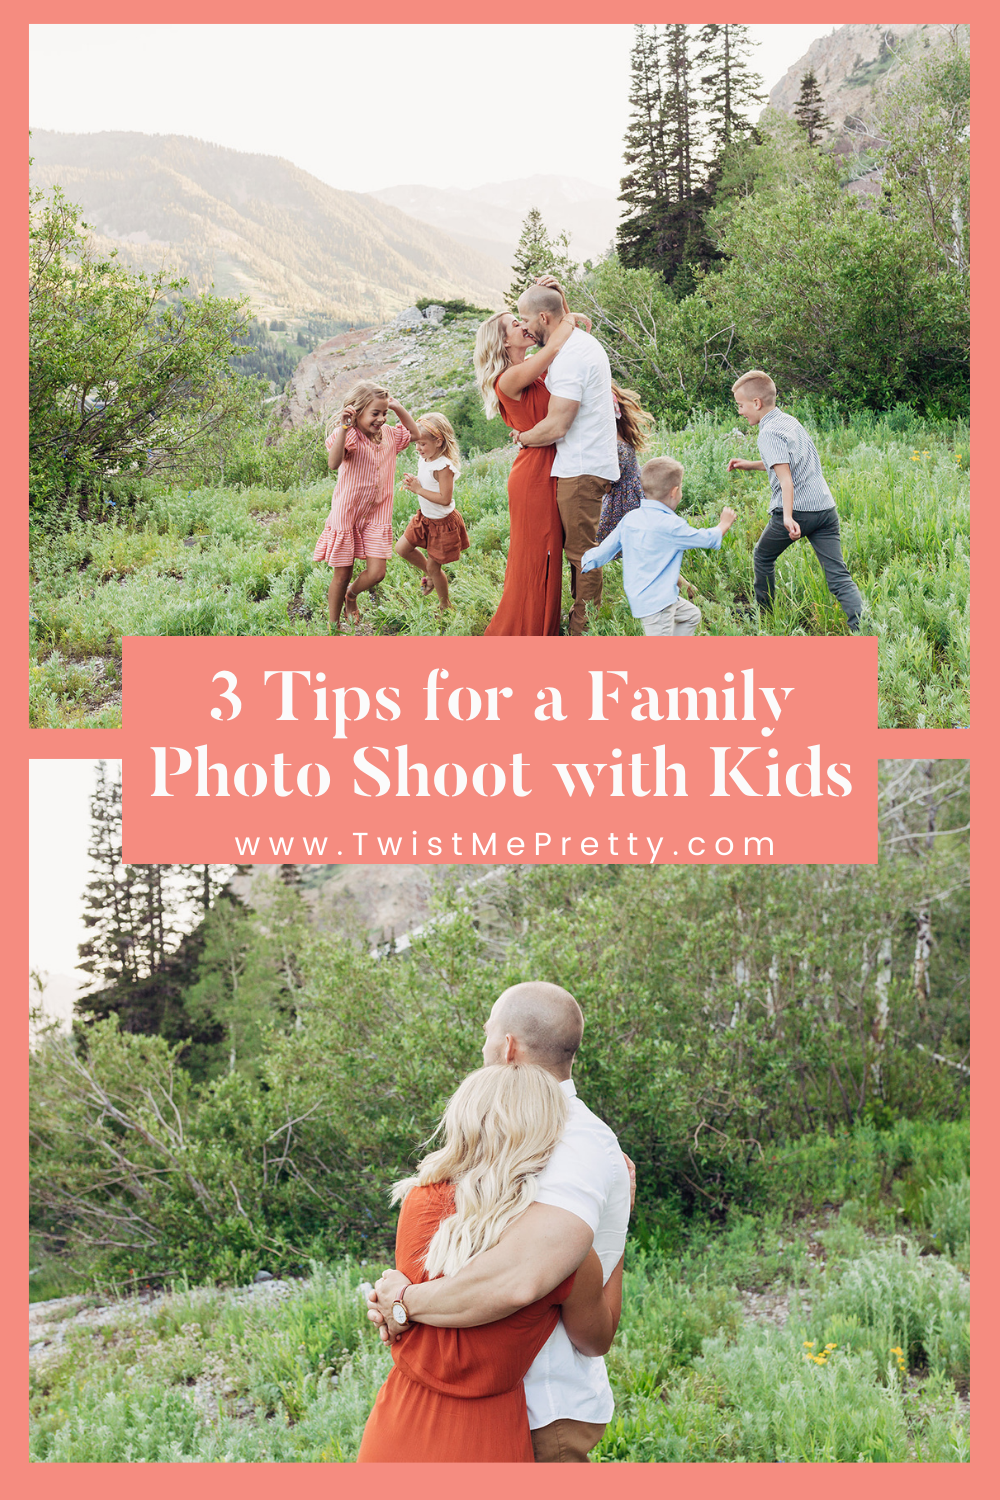 3 Tips for a Family Photo Shoot With Kids www.twistmepretty.com